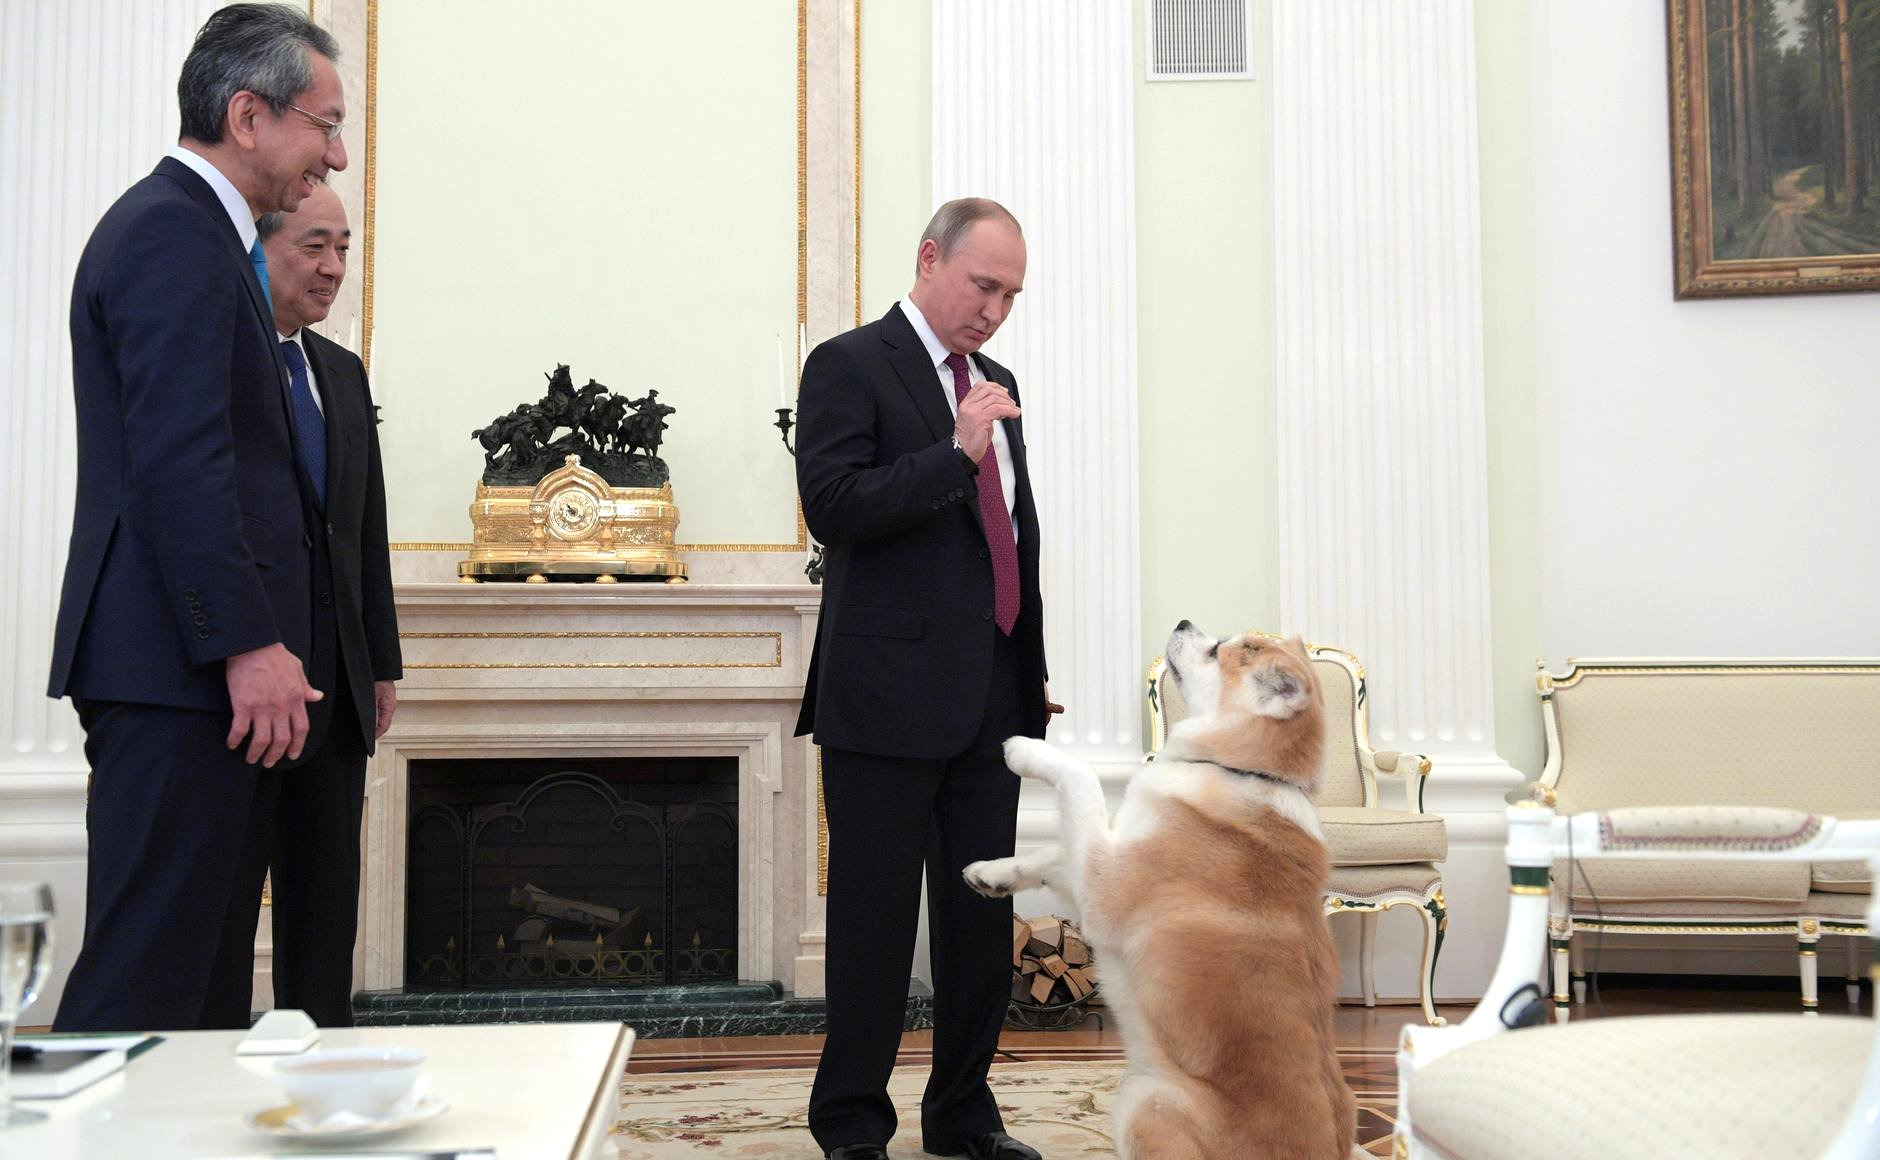 Putin introduces journalists to his Japanese dog, Yume.